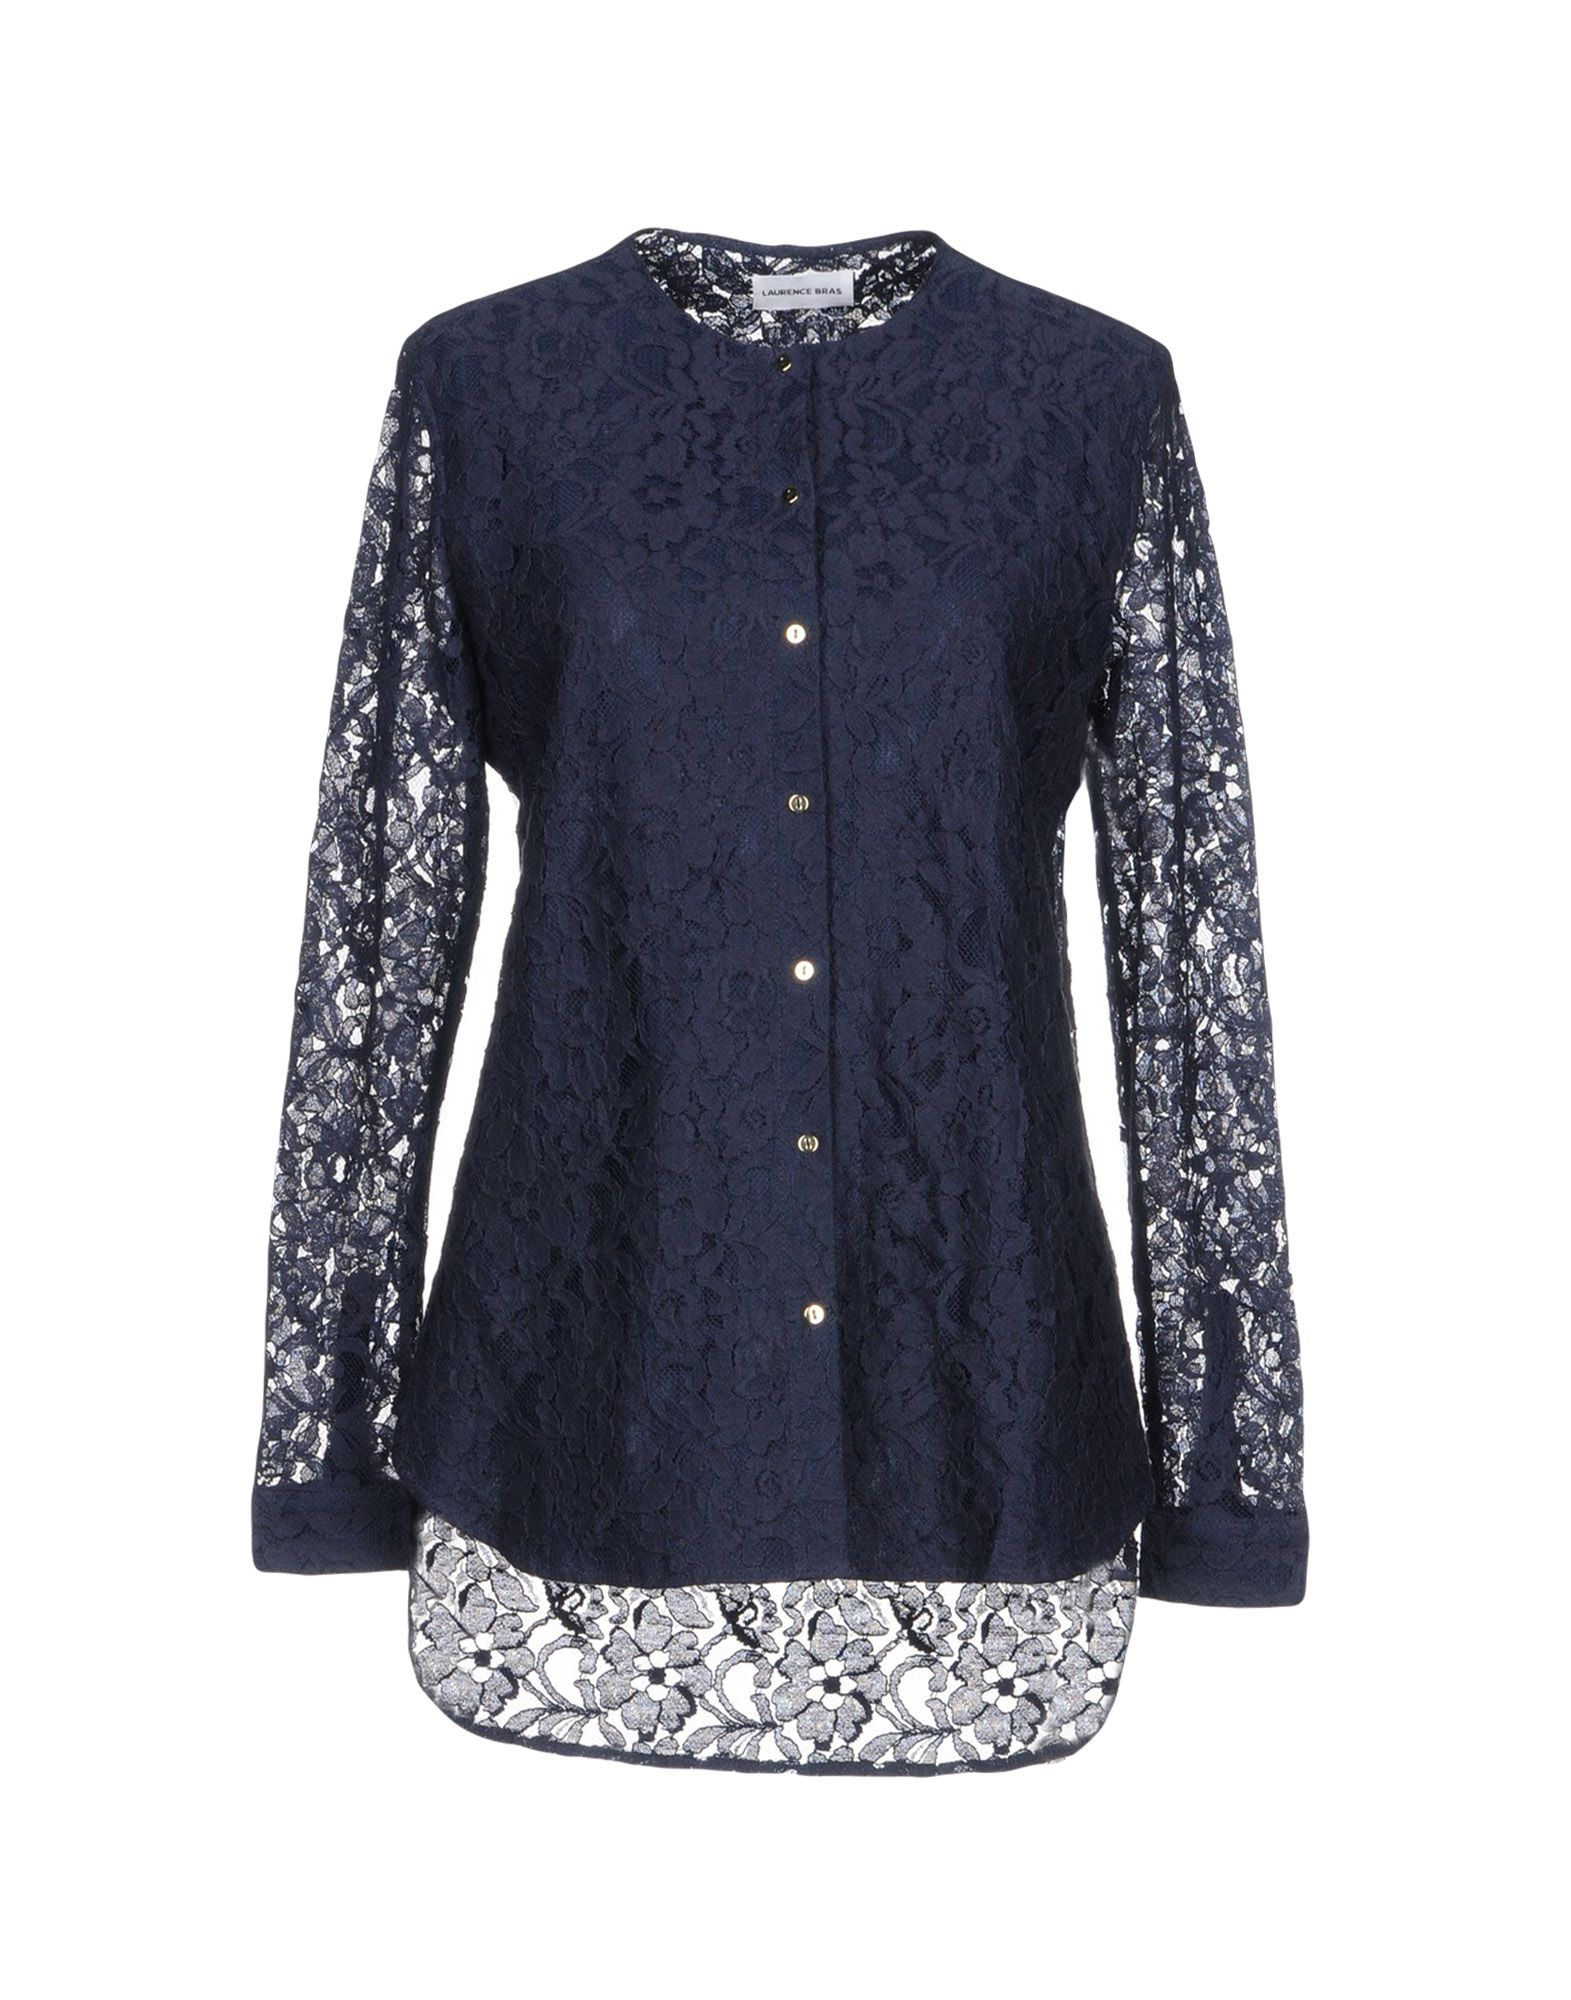 LAURENCE BRAS Lace Shirts & Blouses in Dark Blue